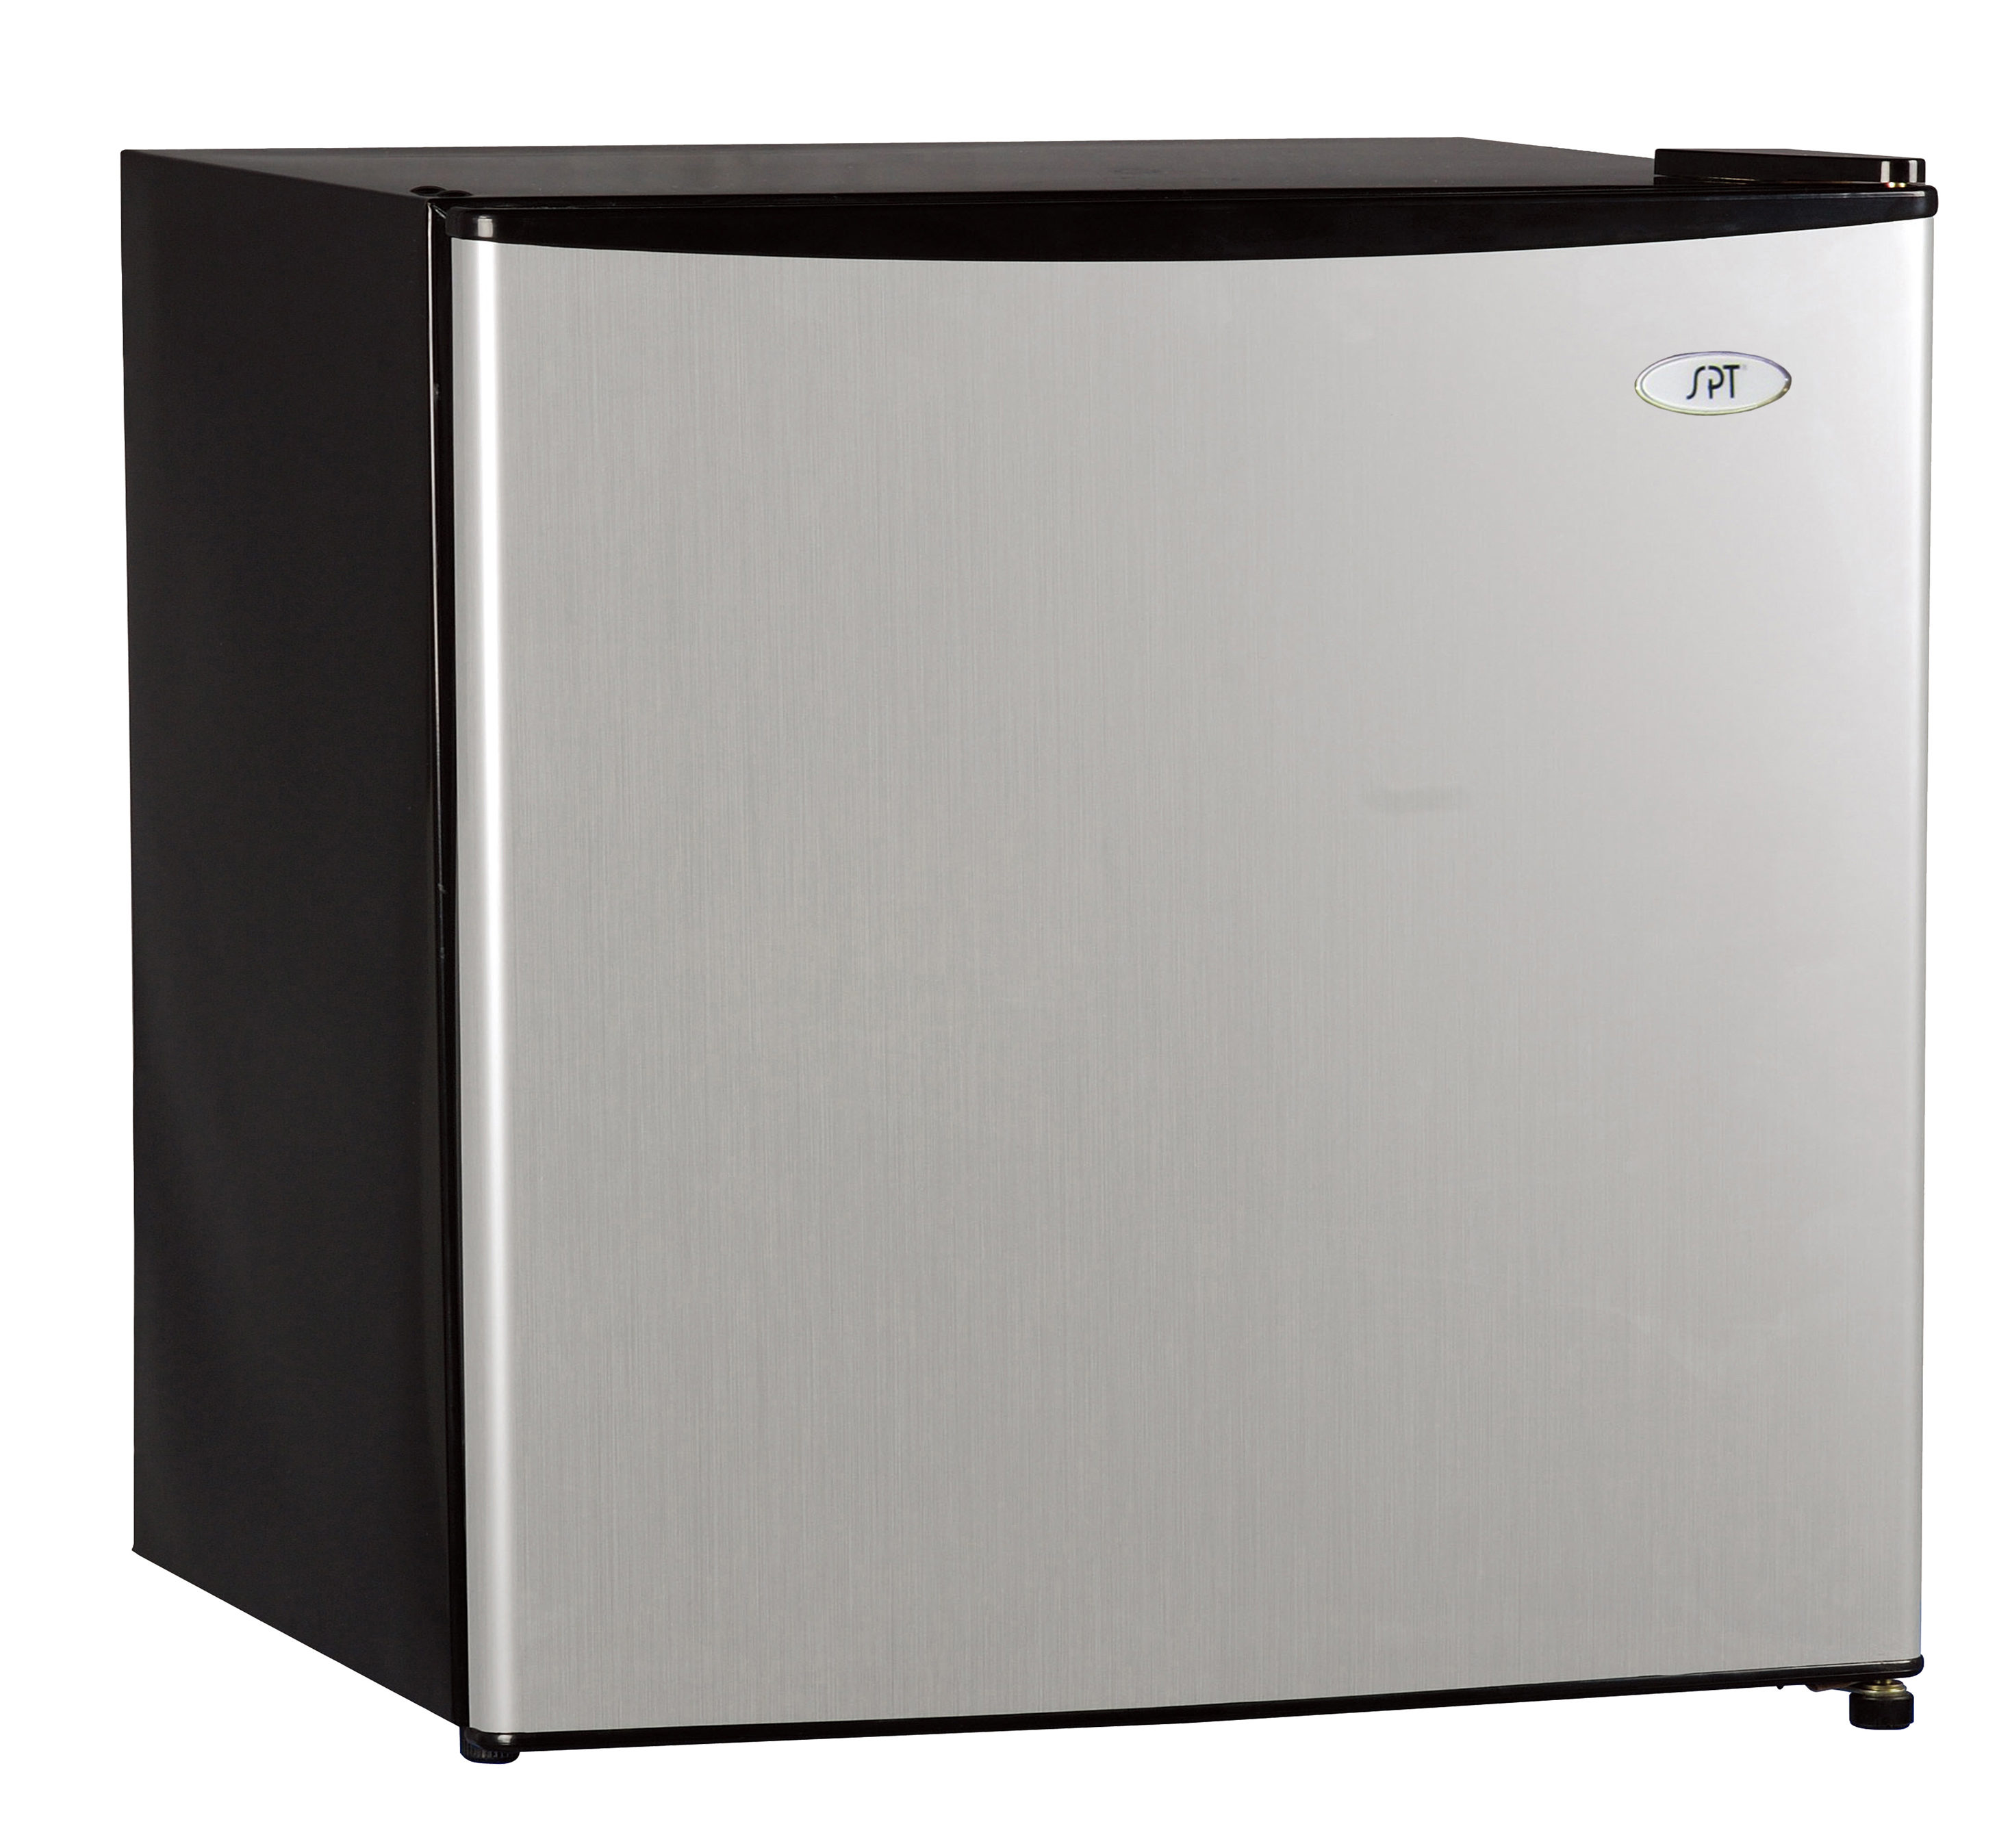 SPT 1.6 Cu. Ft. Compact Refrigerator Stainless Steel RF-164SS